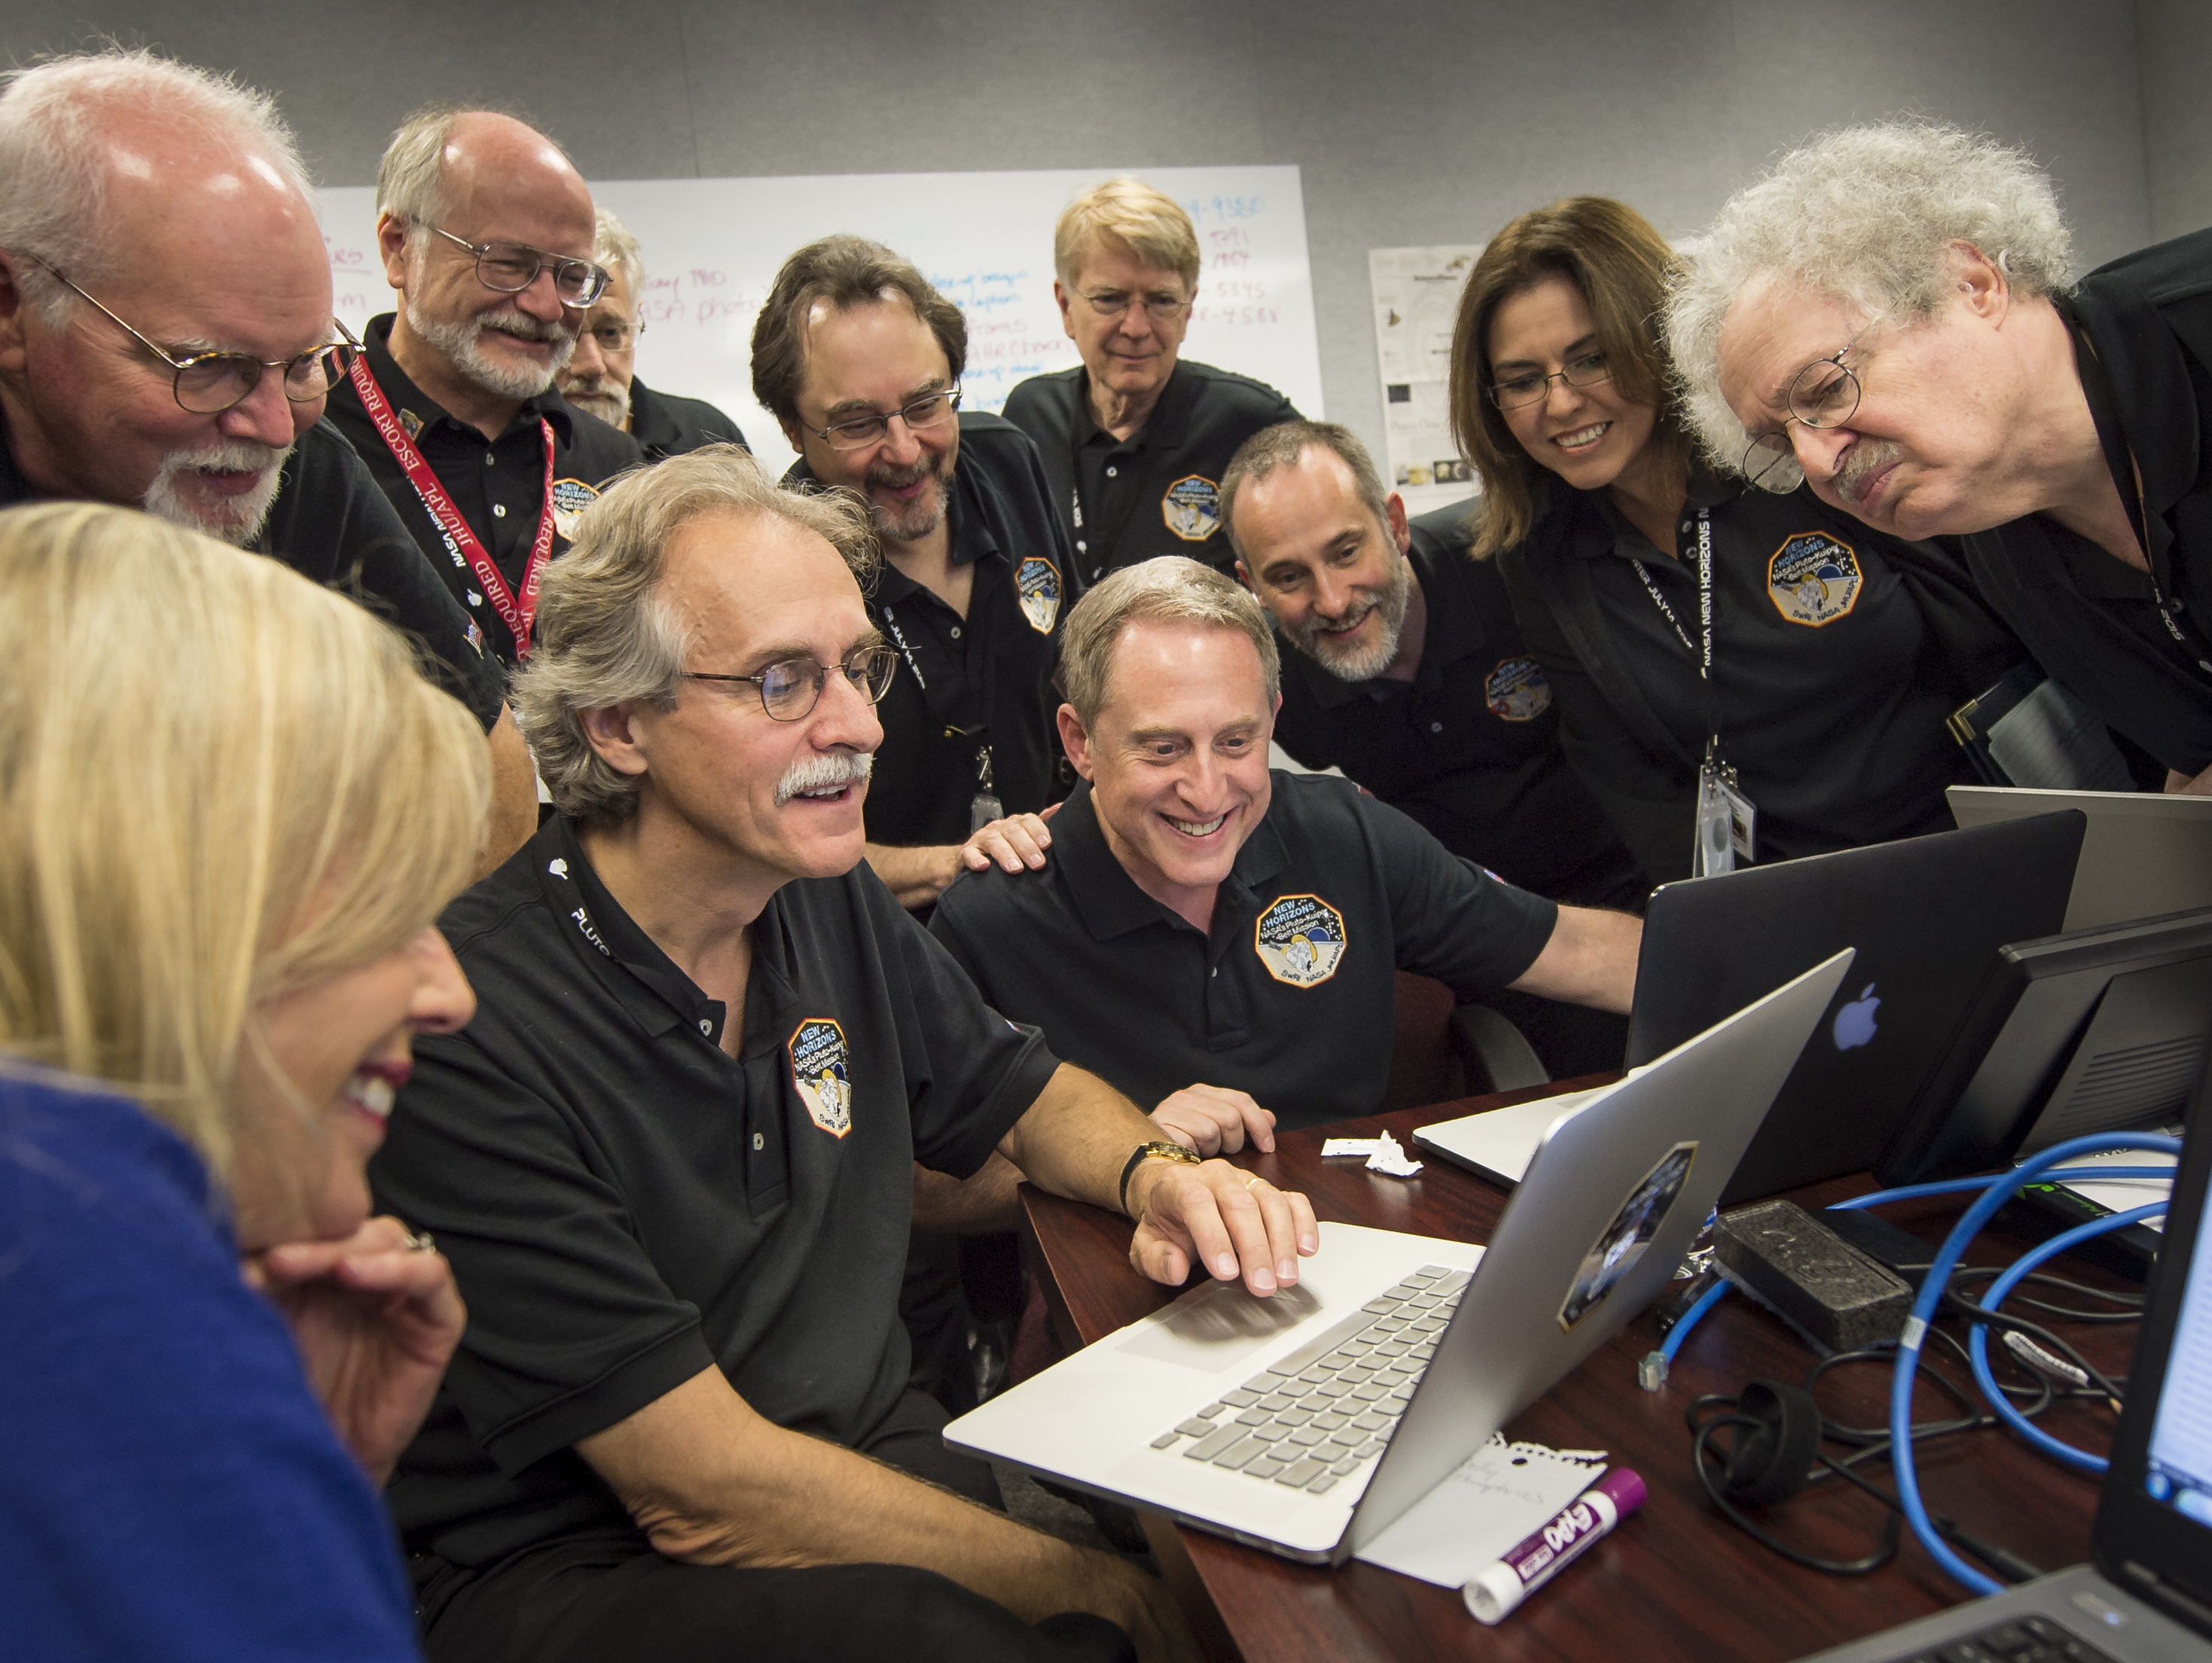 Members of the New Horizons team and embedded journalist, standing left, Jeff Moore, science team, NASA Ames Research Center; Randy Gladstone science team Southwest Research Institute (SwRI); Andy Chaikin, science writer; Willam Lewis, science writer; Will Grundy, science team, Lowell Observatory; Maria Stothoff, media relations, Johns Hopkins University Applied Physics Laboratory (APL); Steve Maran, science writer, seated; Laura Cantillo, NASA media relations, left, John Spencer, science team, Southwest Research Institute; and New Horizons Principal Investigator Alan Stern of SwRI gather around a laptop and smile as they review new processed images from the New Horizons spacecraft, Wednesday, July 15, 2015 at APL in Laurel, Md. Credit: NASA/Bill Ingalls